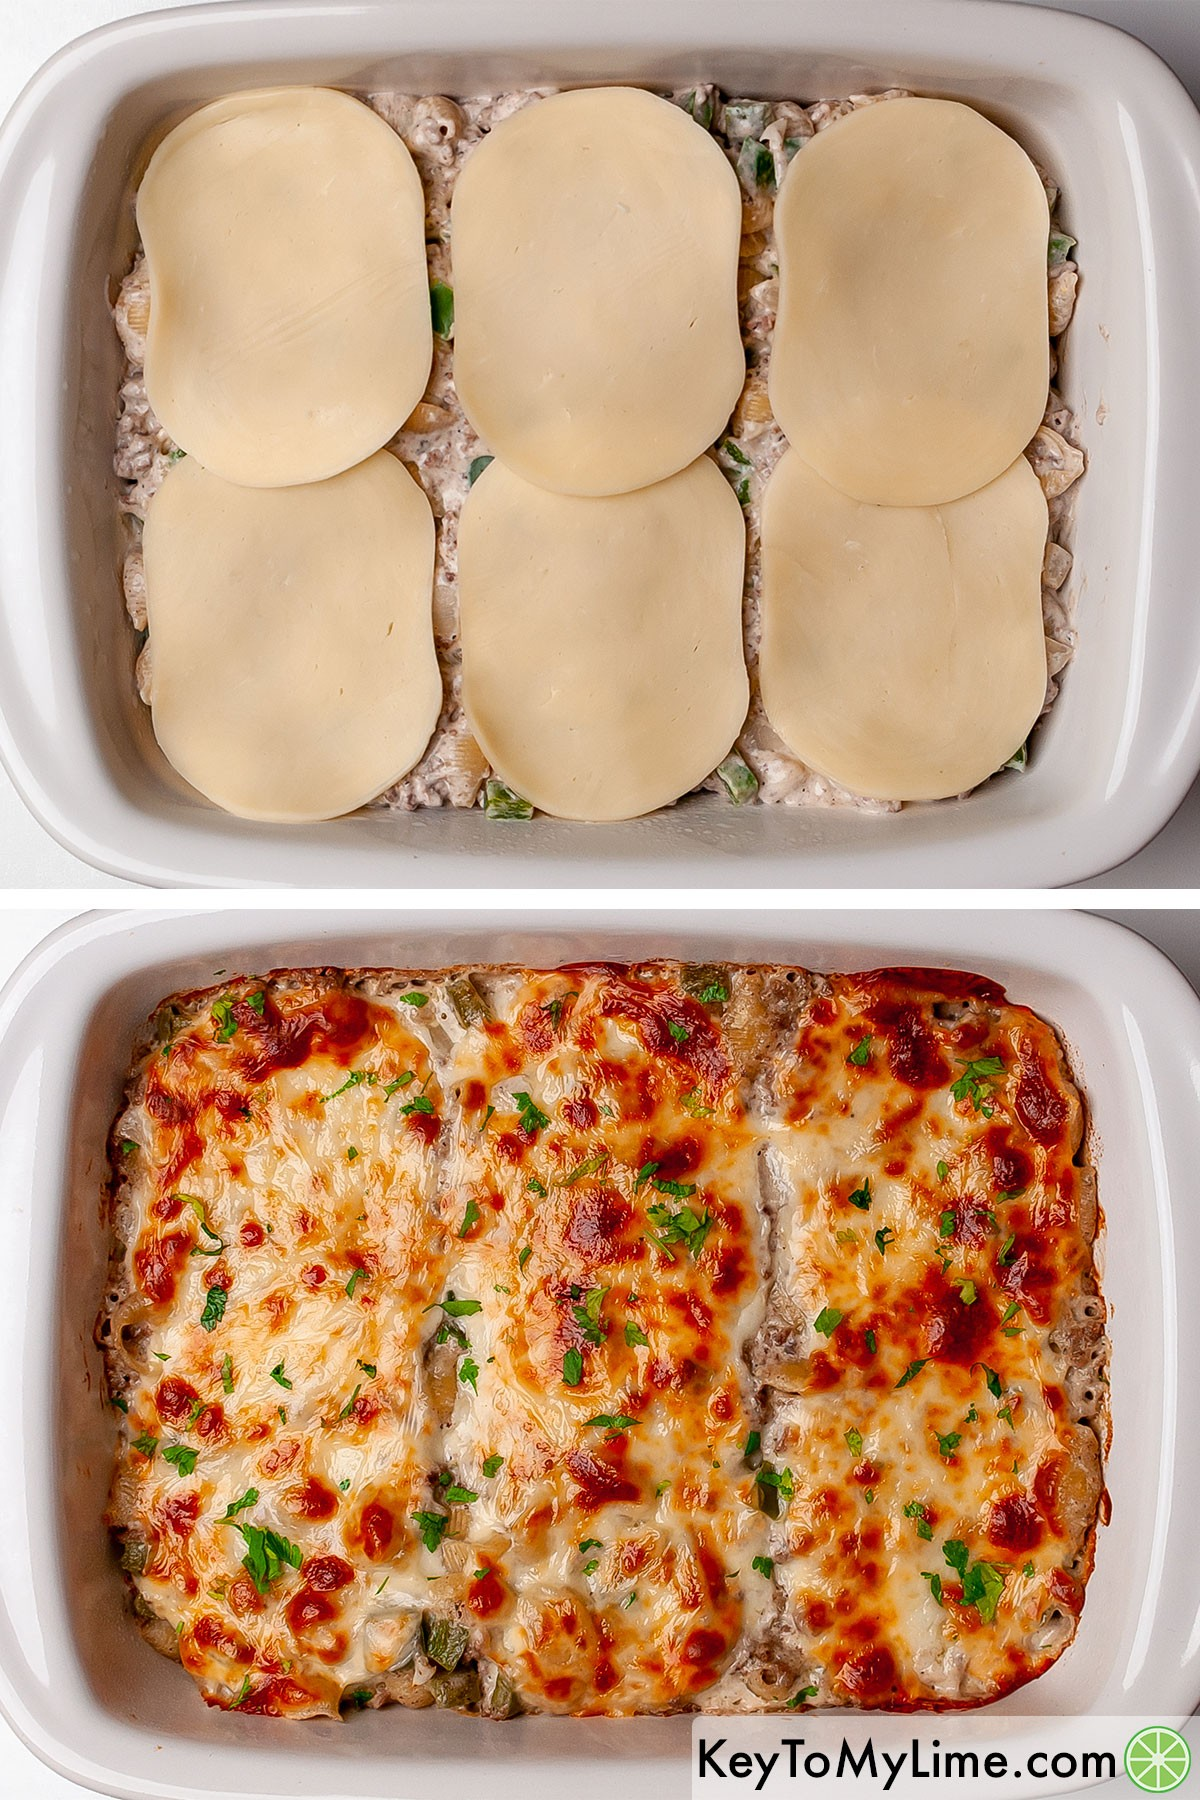 Philly cheesesteak casserole before and after baking.